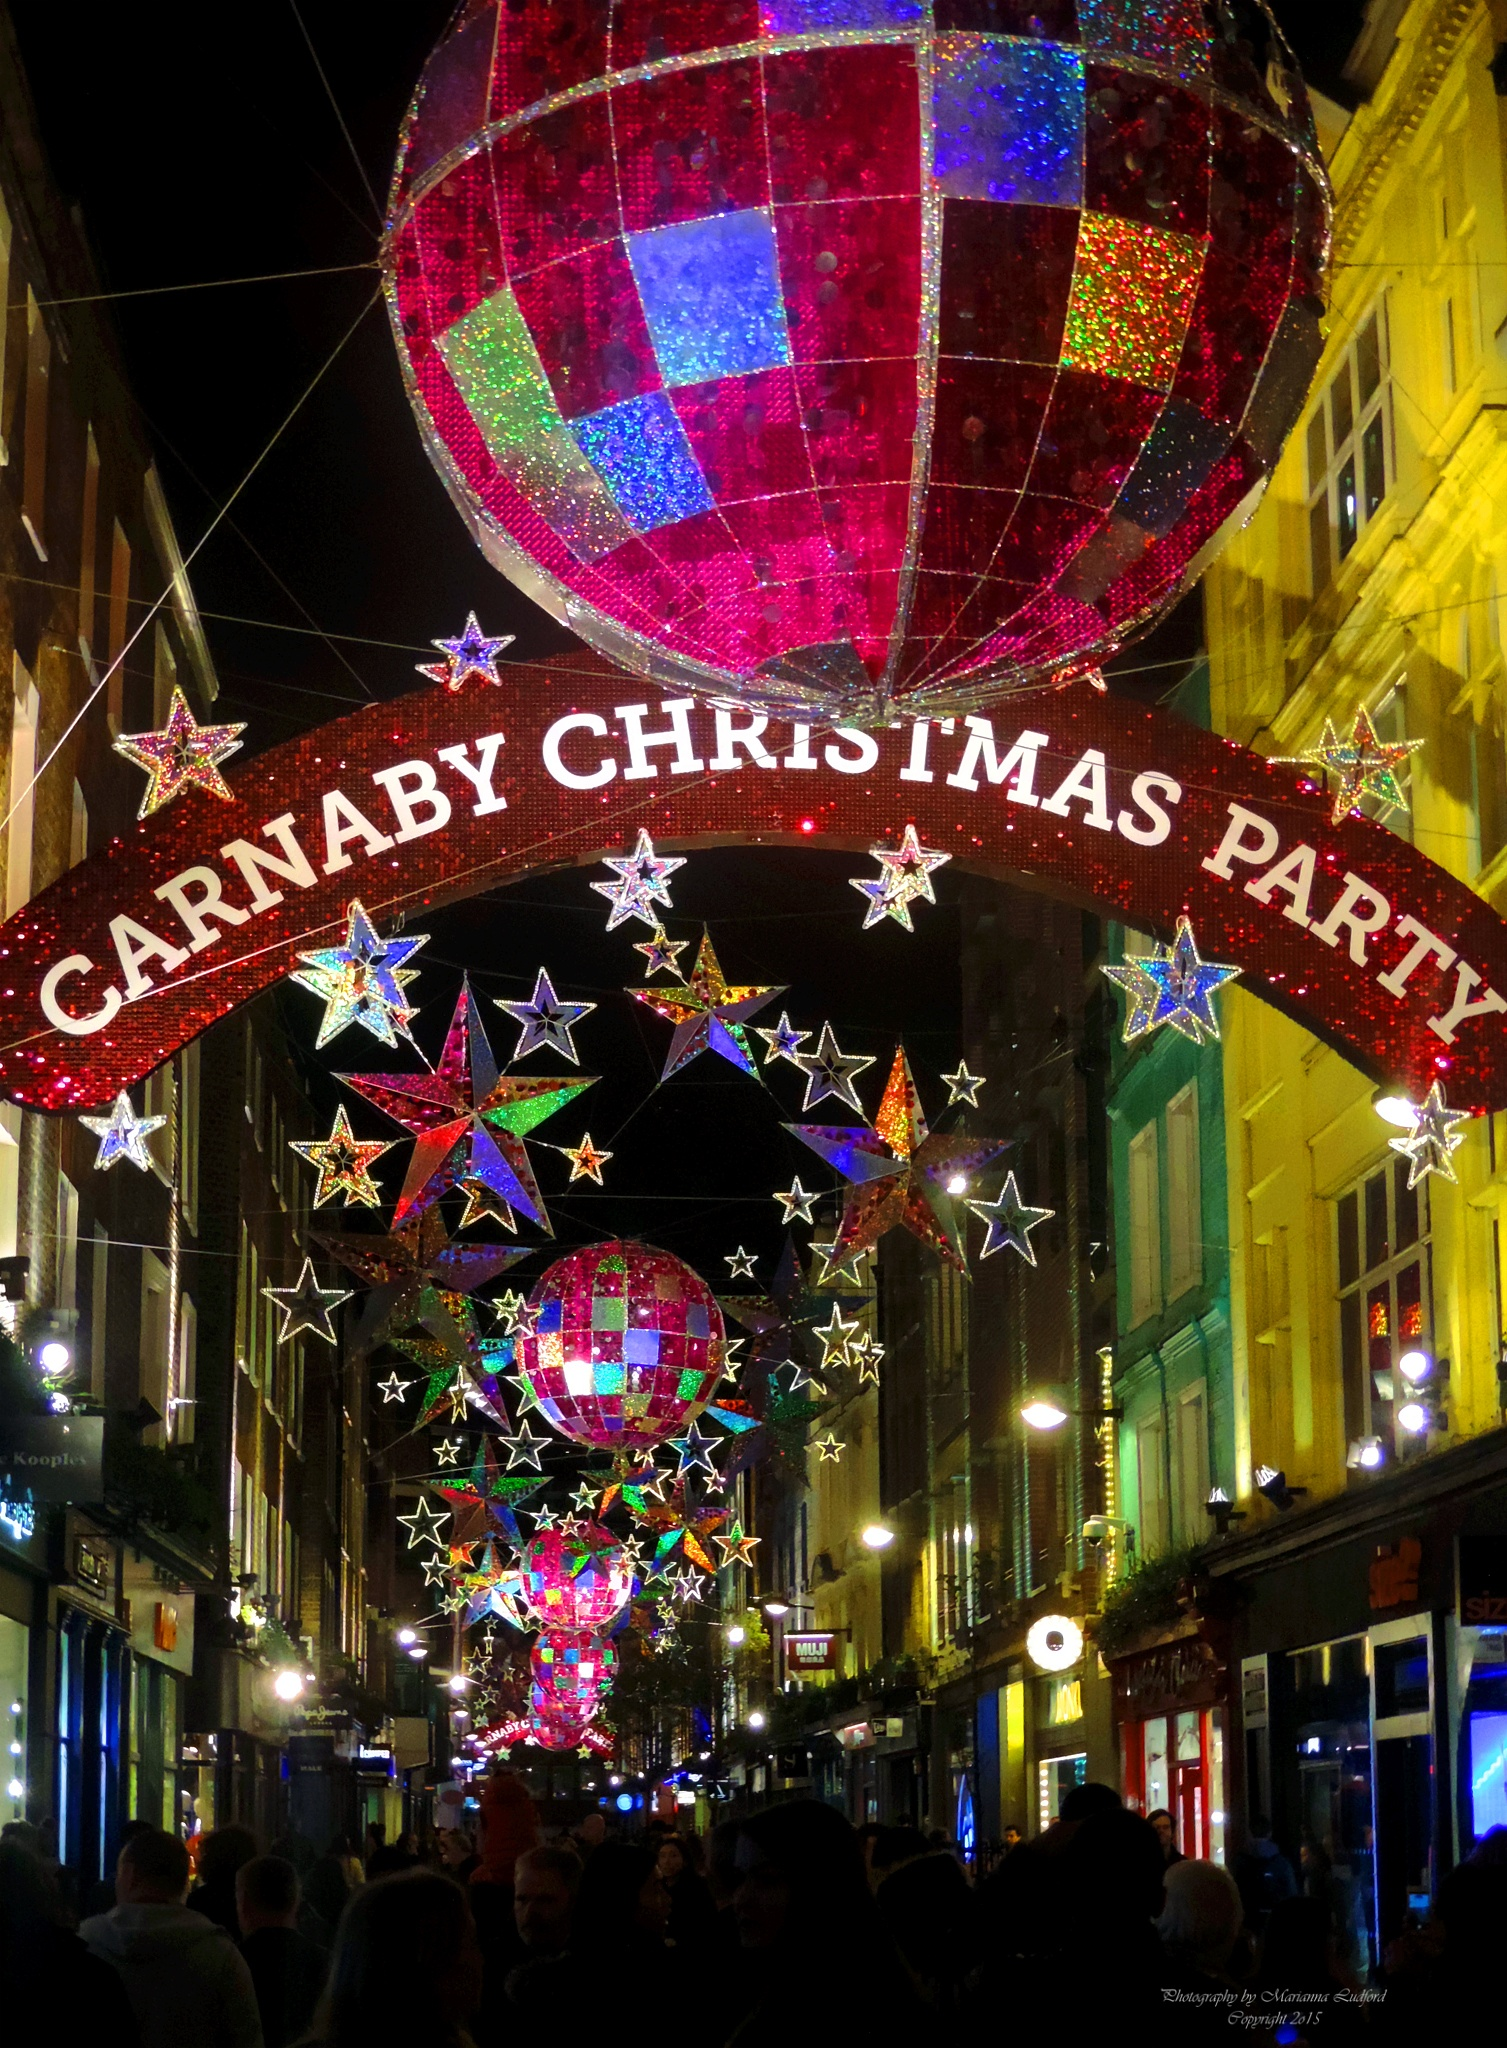 CARNABY CHRISTMAS PARTY by marinna67